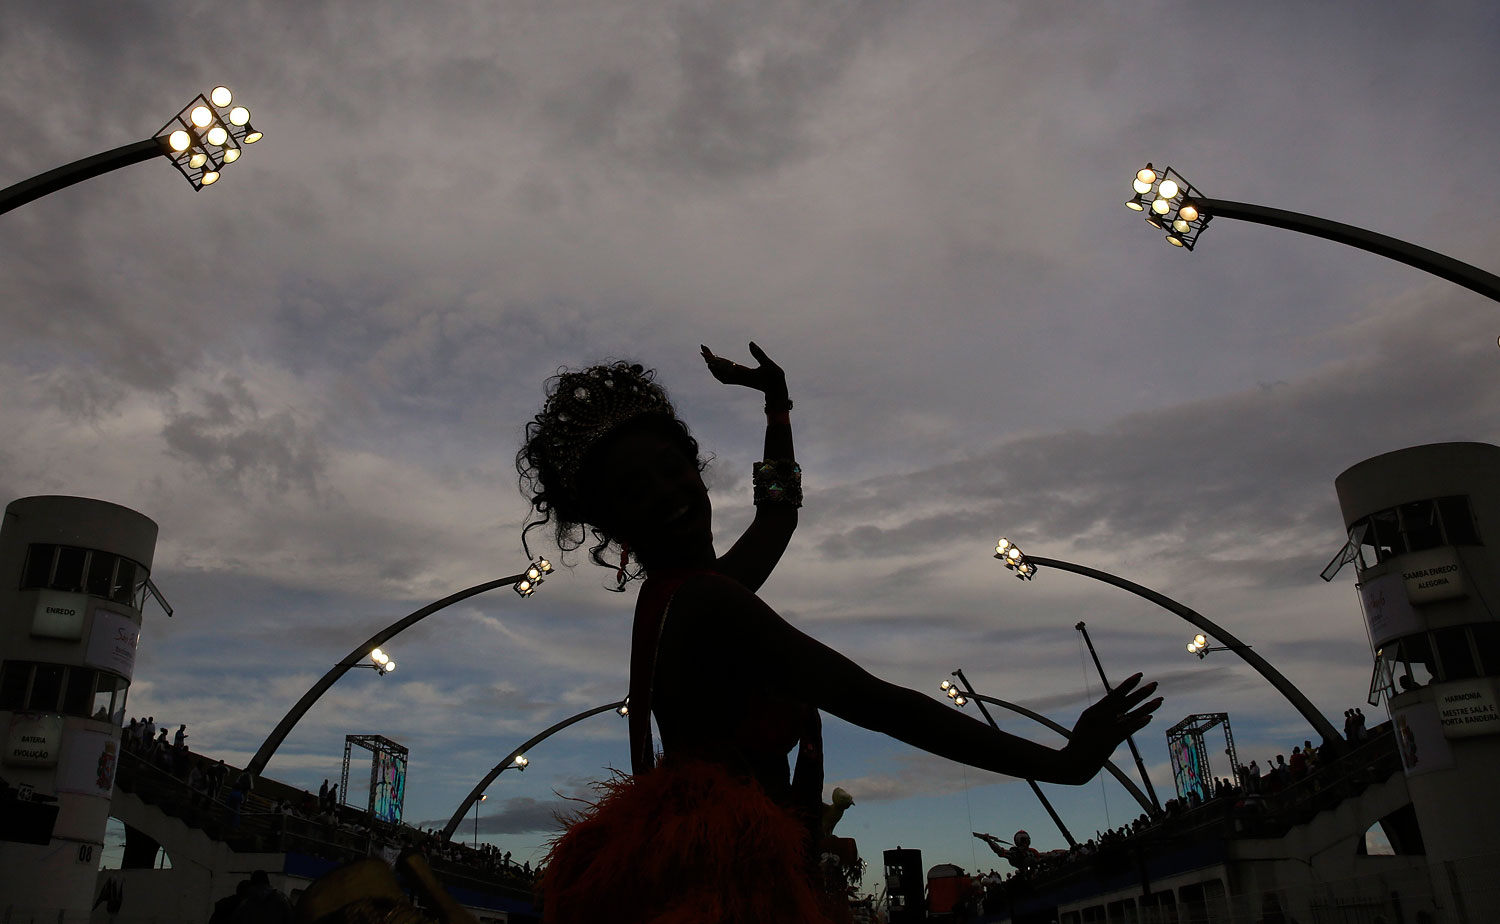 A dancer from the Tom Maior samba school performs during a carnival parade in Sao Paulo, Brazil, Saturday, March 1, 2014.